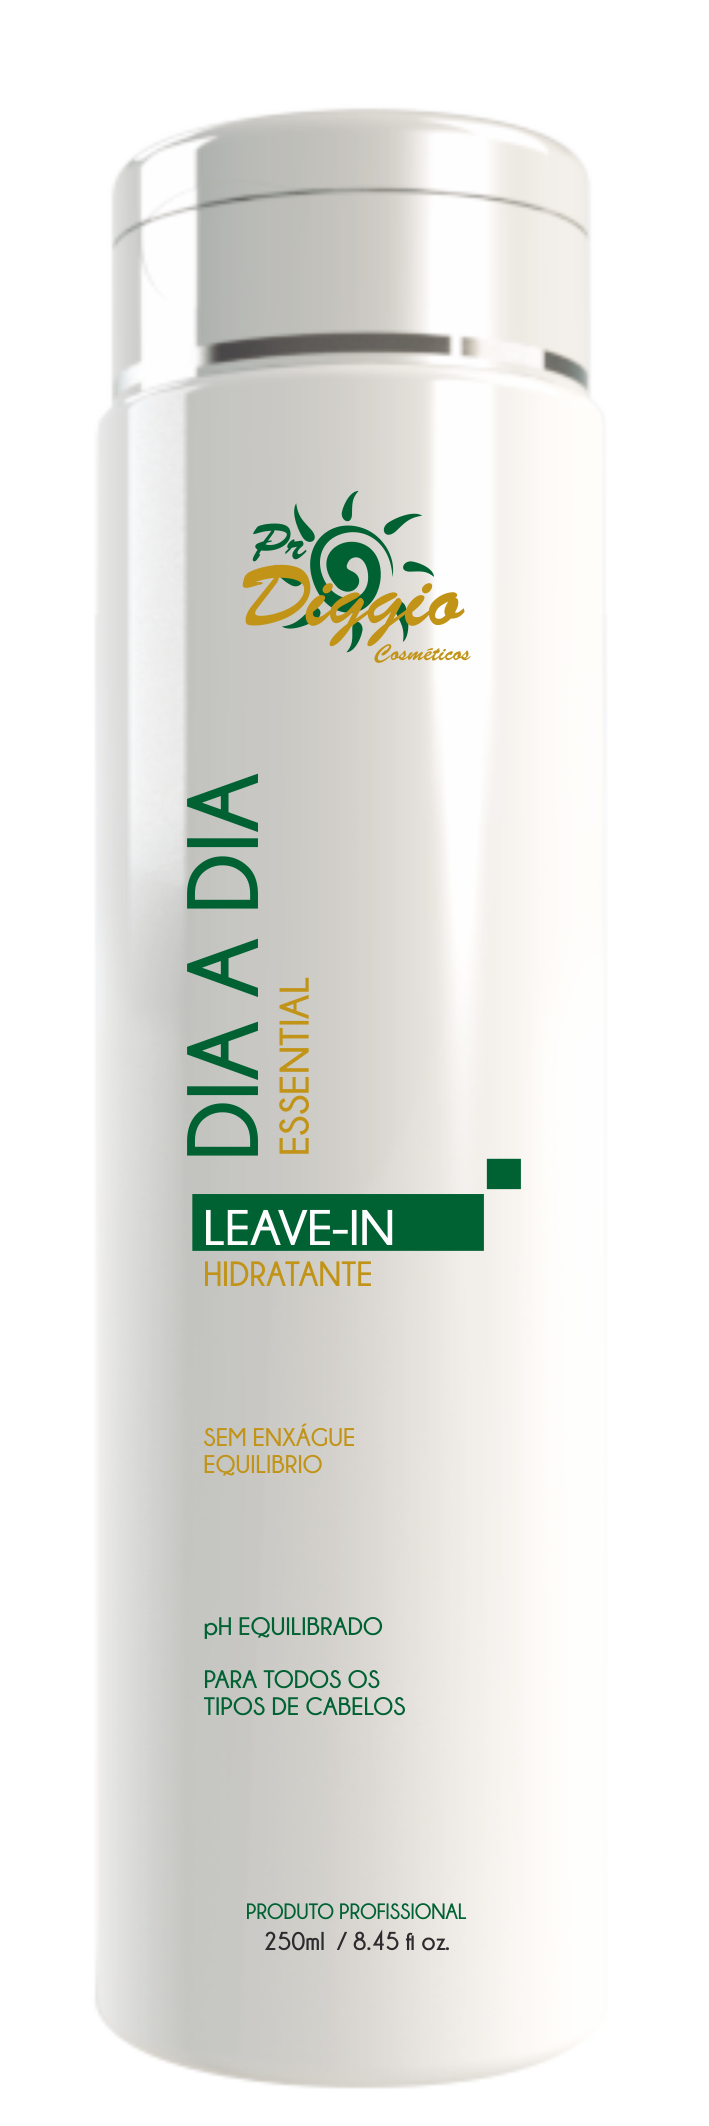 Leave-In Dia a Dia Essential